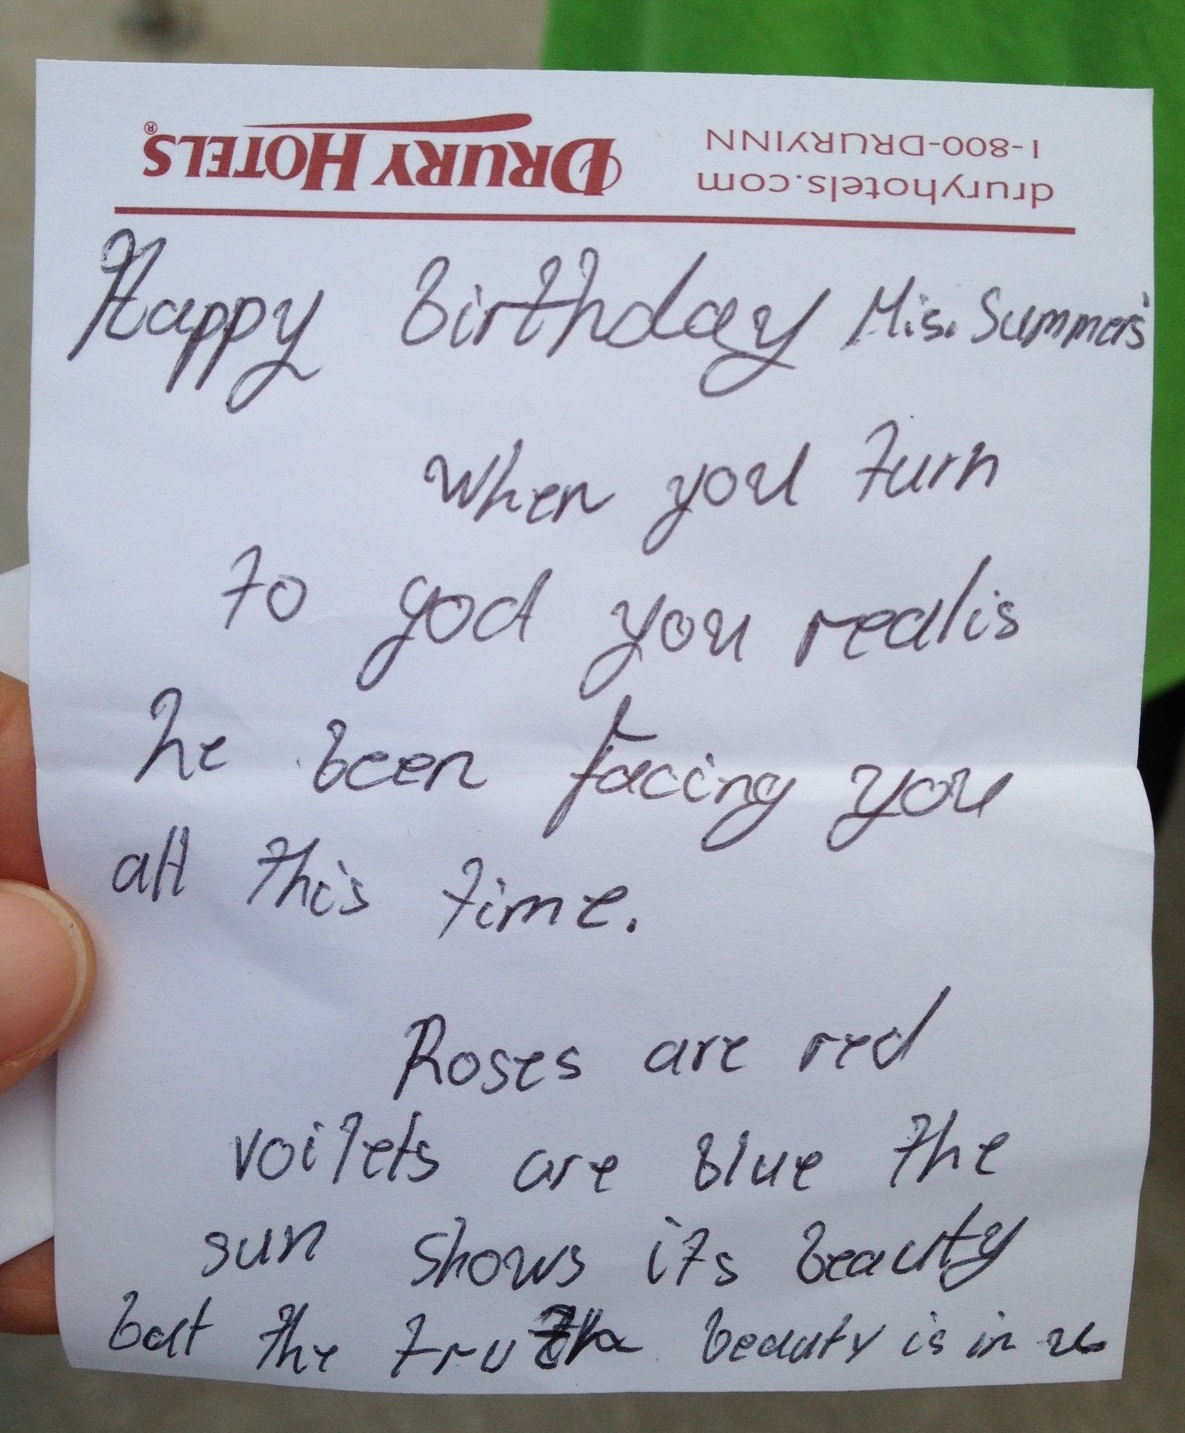 best birthday note ; a-birthday-note-ms-summers-birthday-note